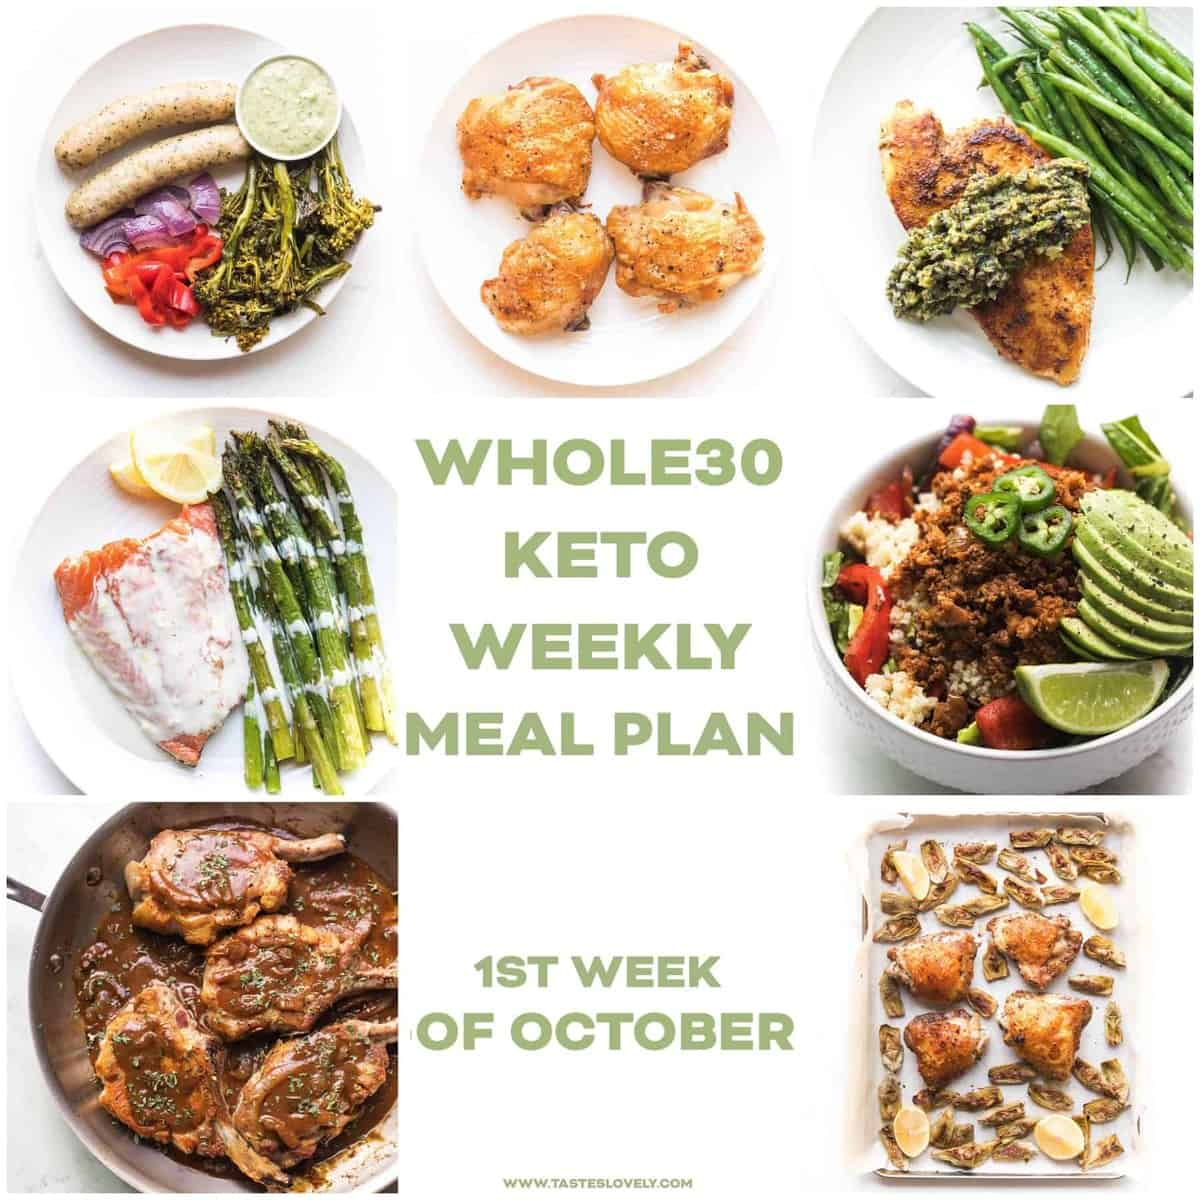 Keto Meal Day 1